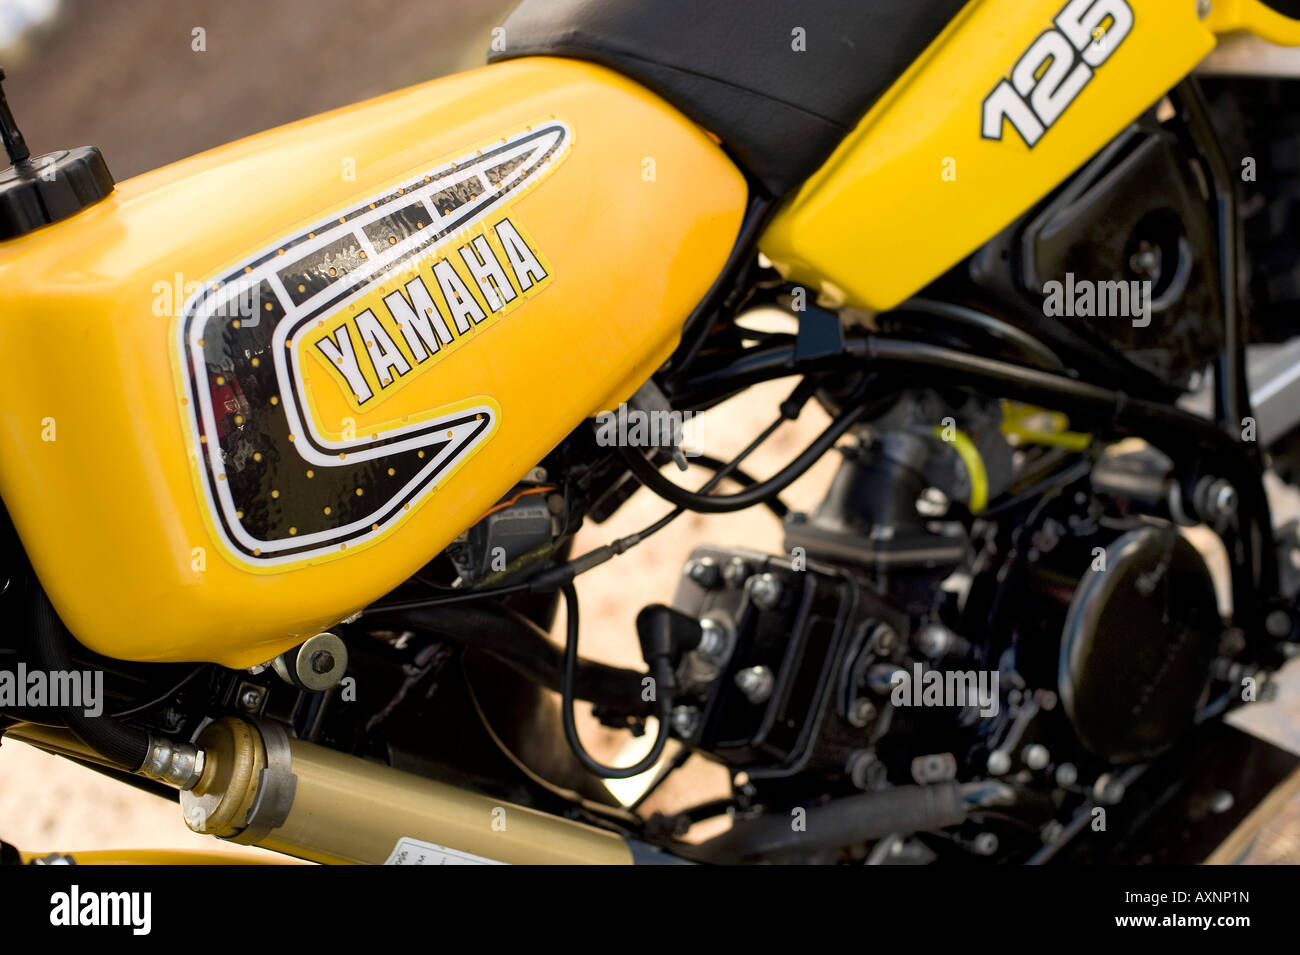 Yellow American fuel tank engine and seat from vintage twin-shock restored Yamaha YZ125H 1981 dirt bike motocross - Stock Image